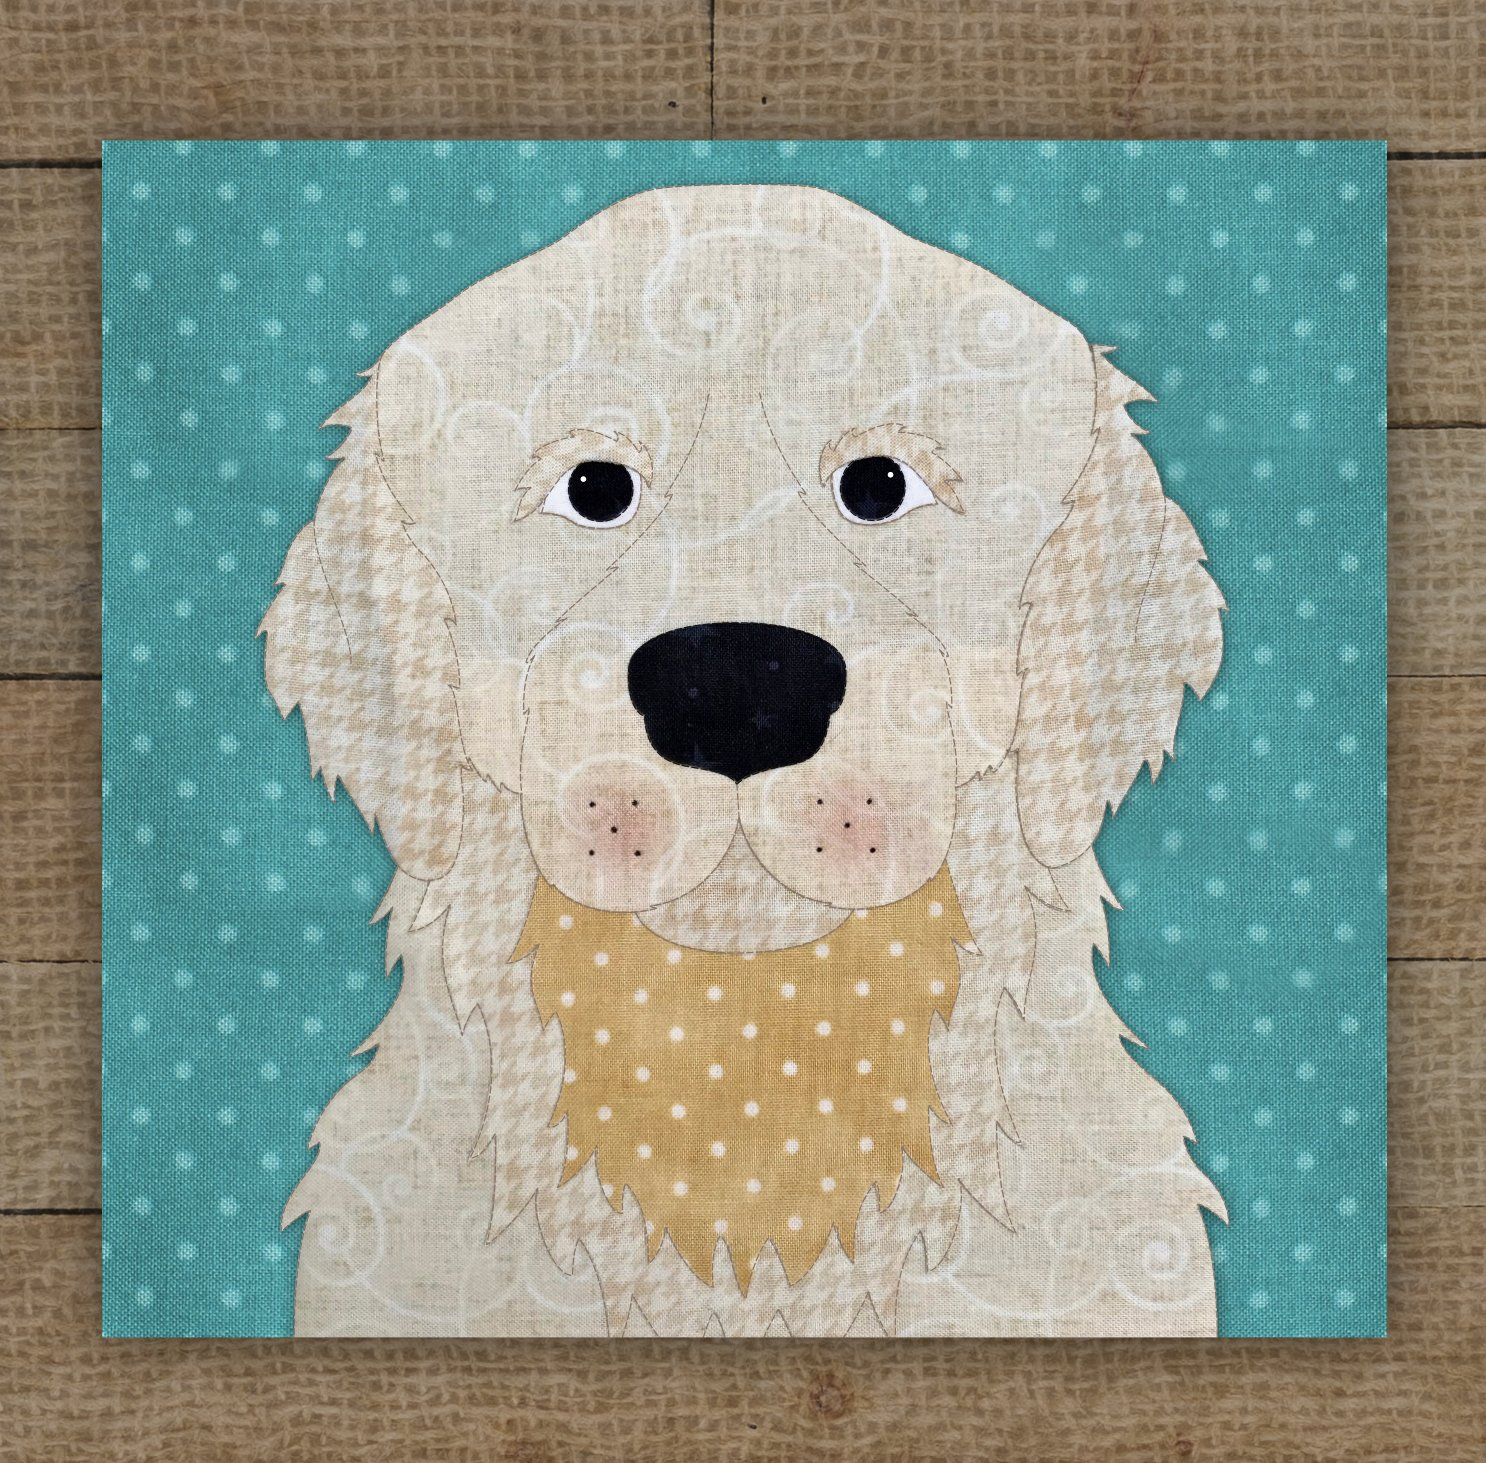 Golden Retriever (Cream) Precut Fused Applique Kit